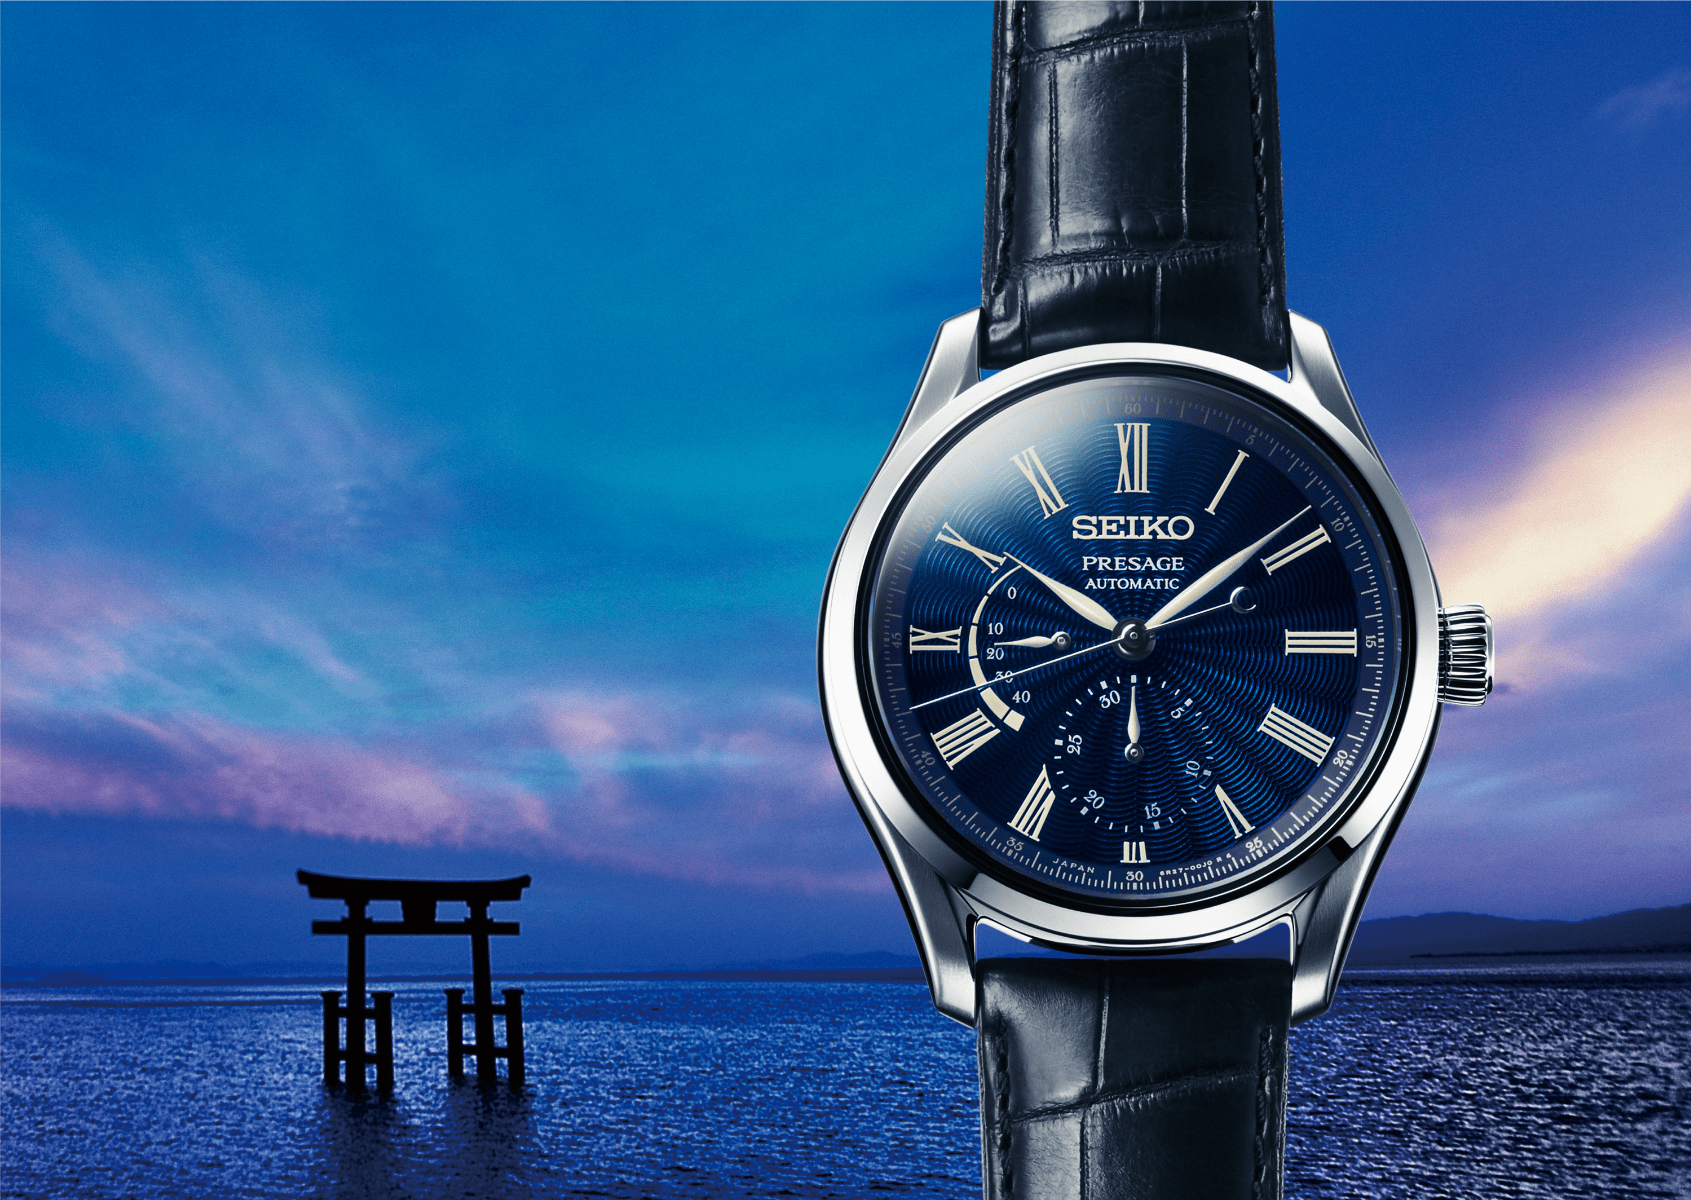 Seiko Presage Shippo Enamel Limited Edition with power reserve indicator